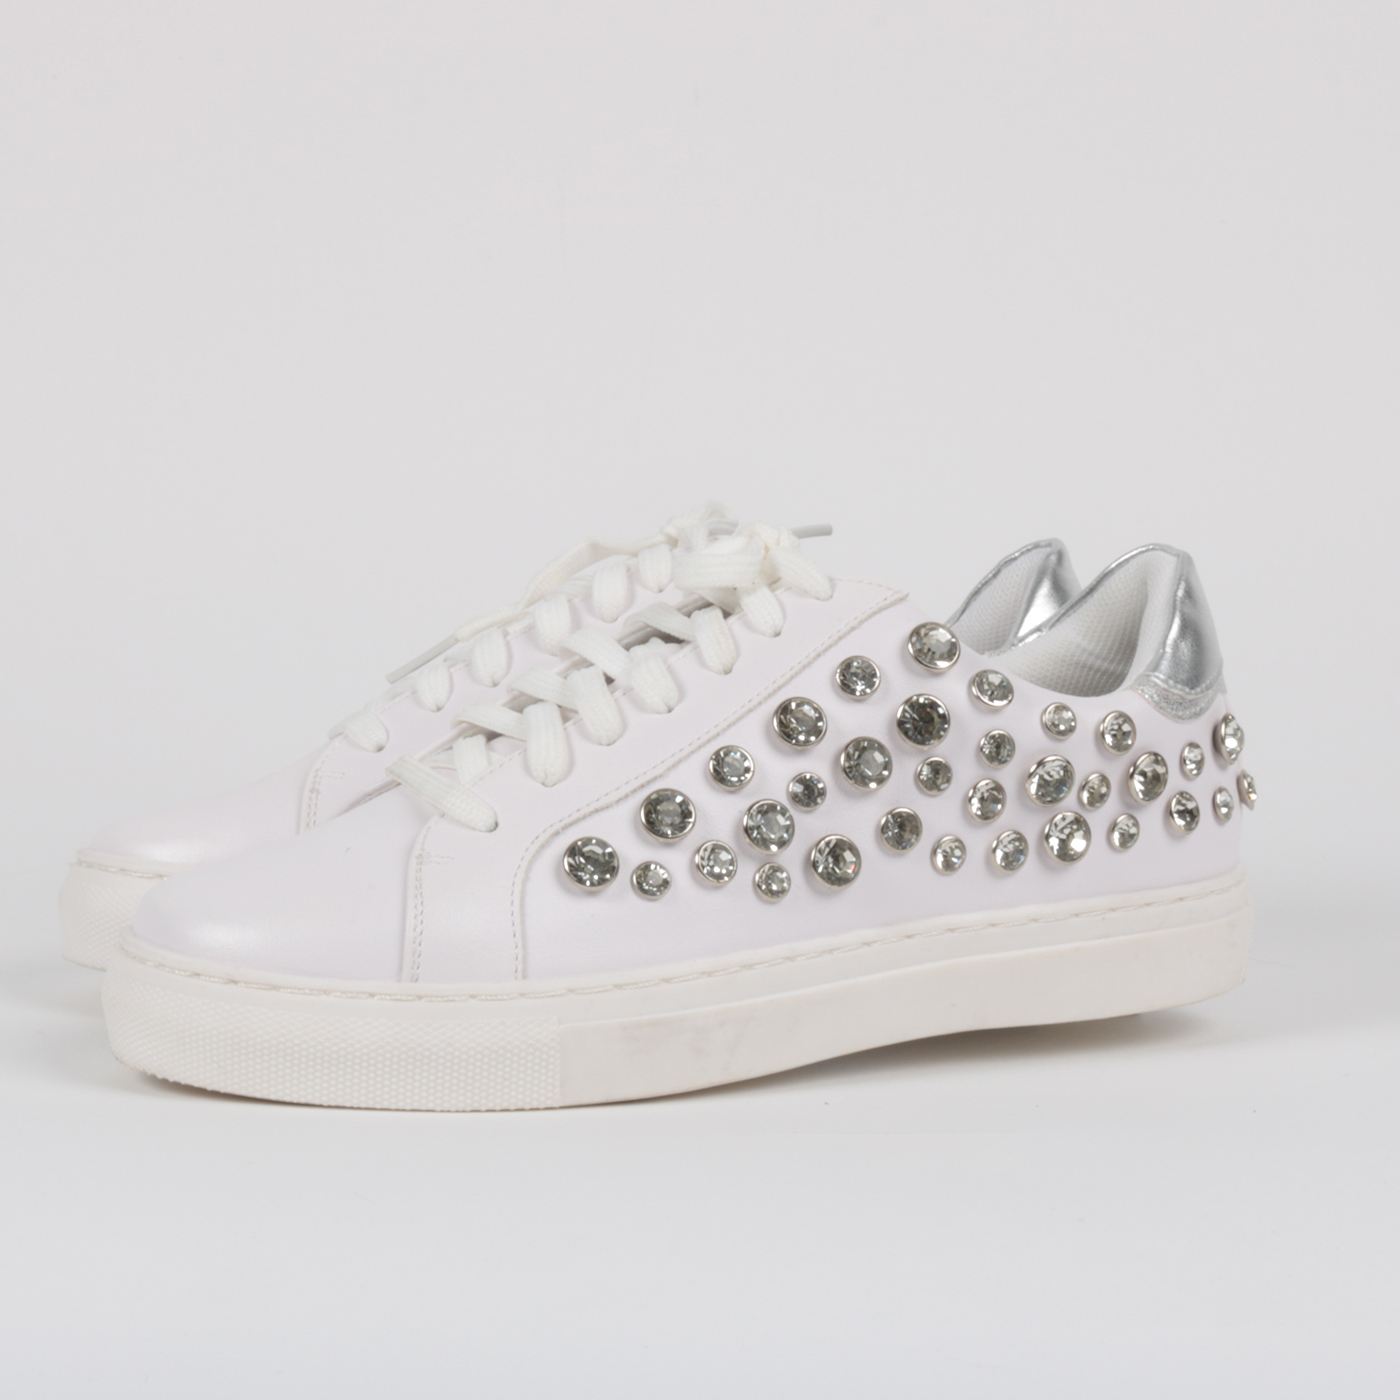 best website 55ed9 a496a Gavì - Sneakers piattaforma con strass ornamentali - Bianco